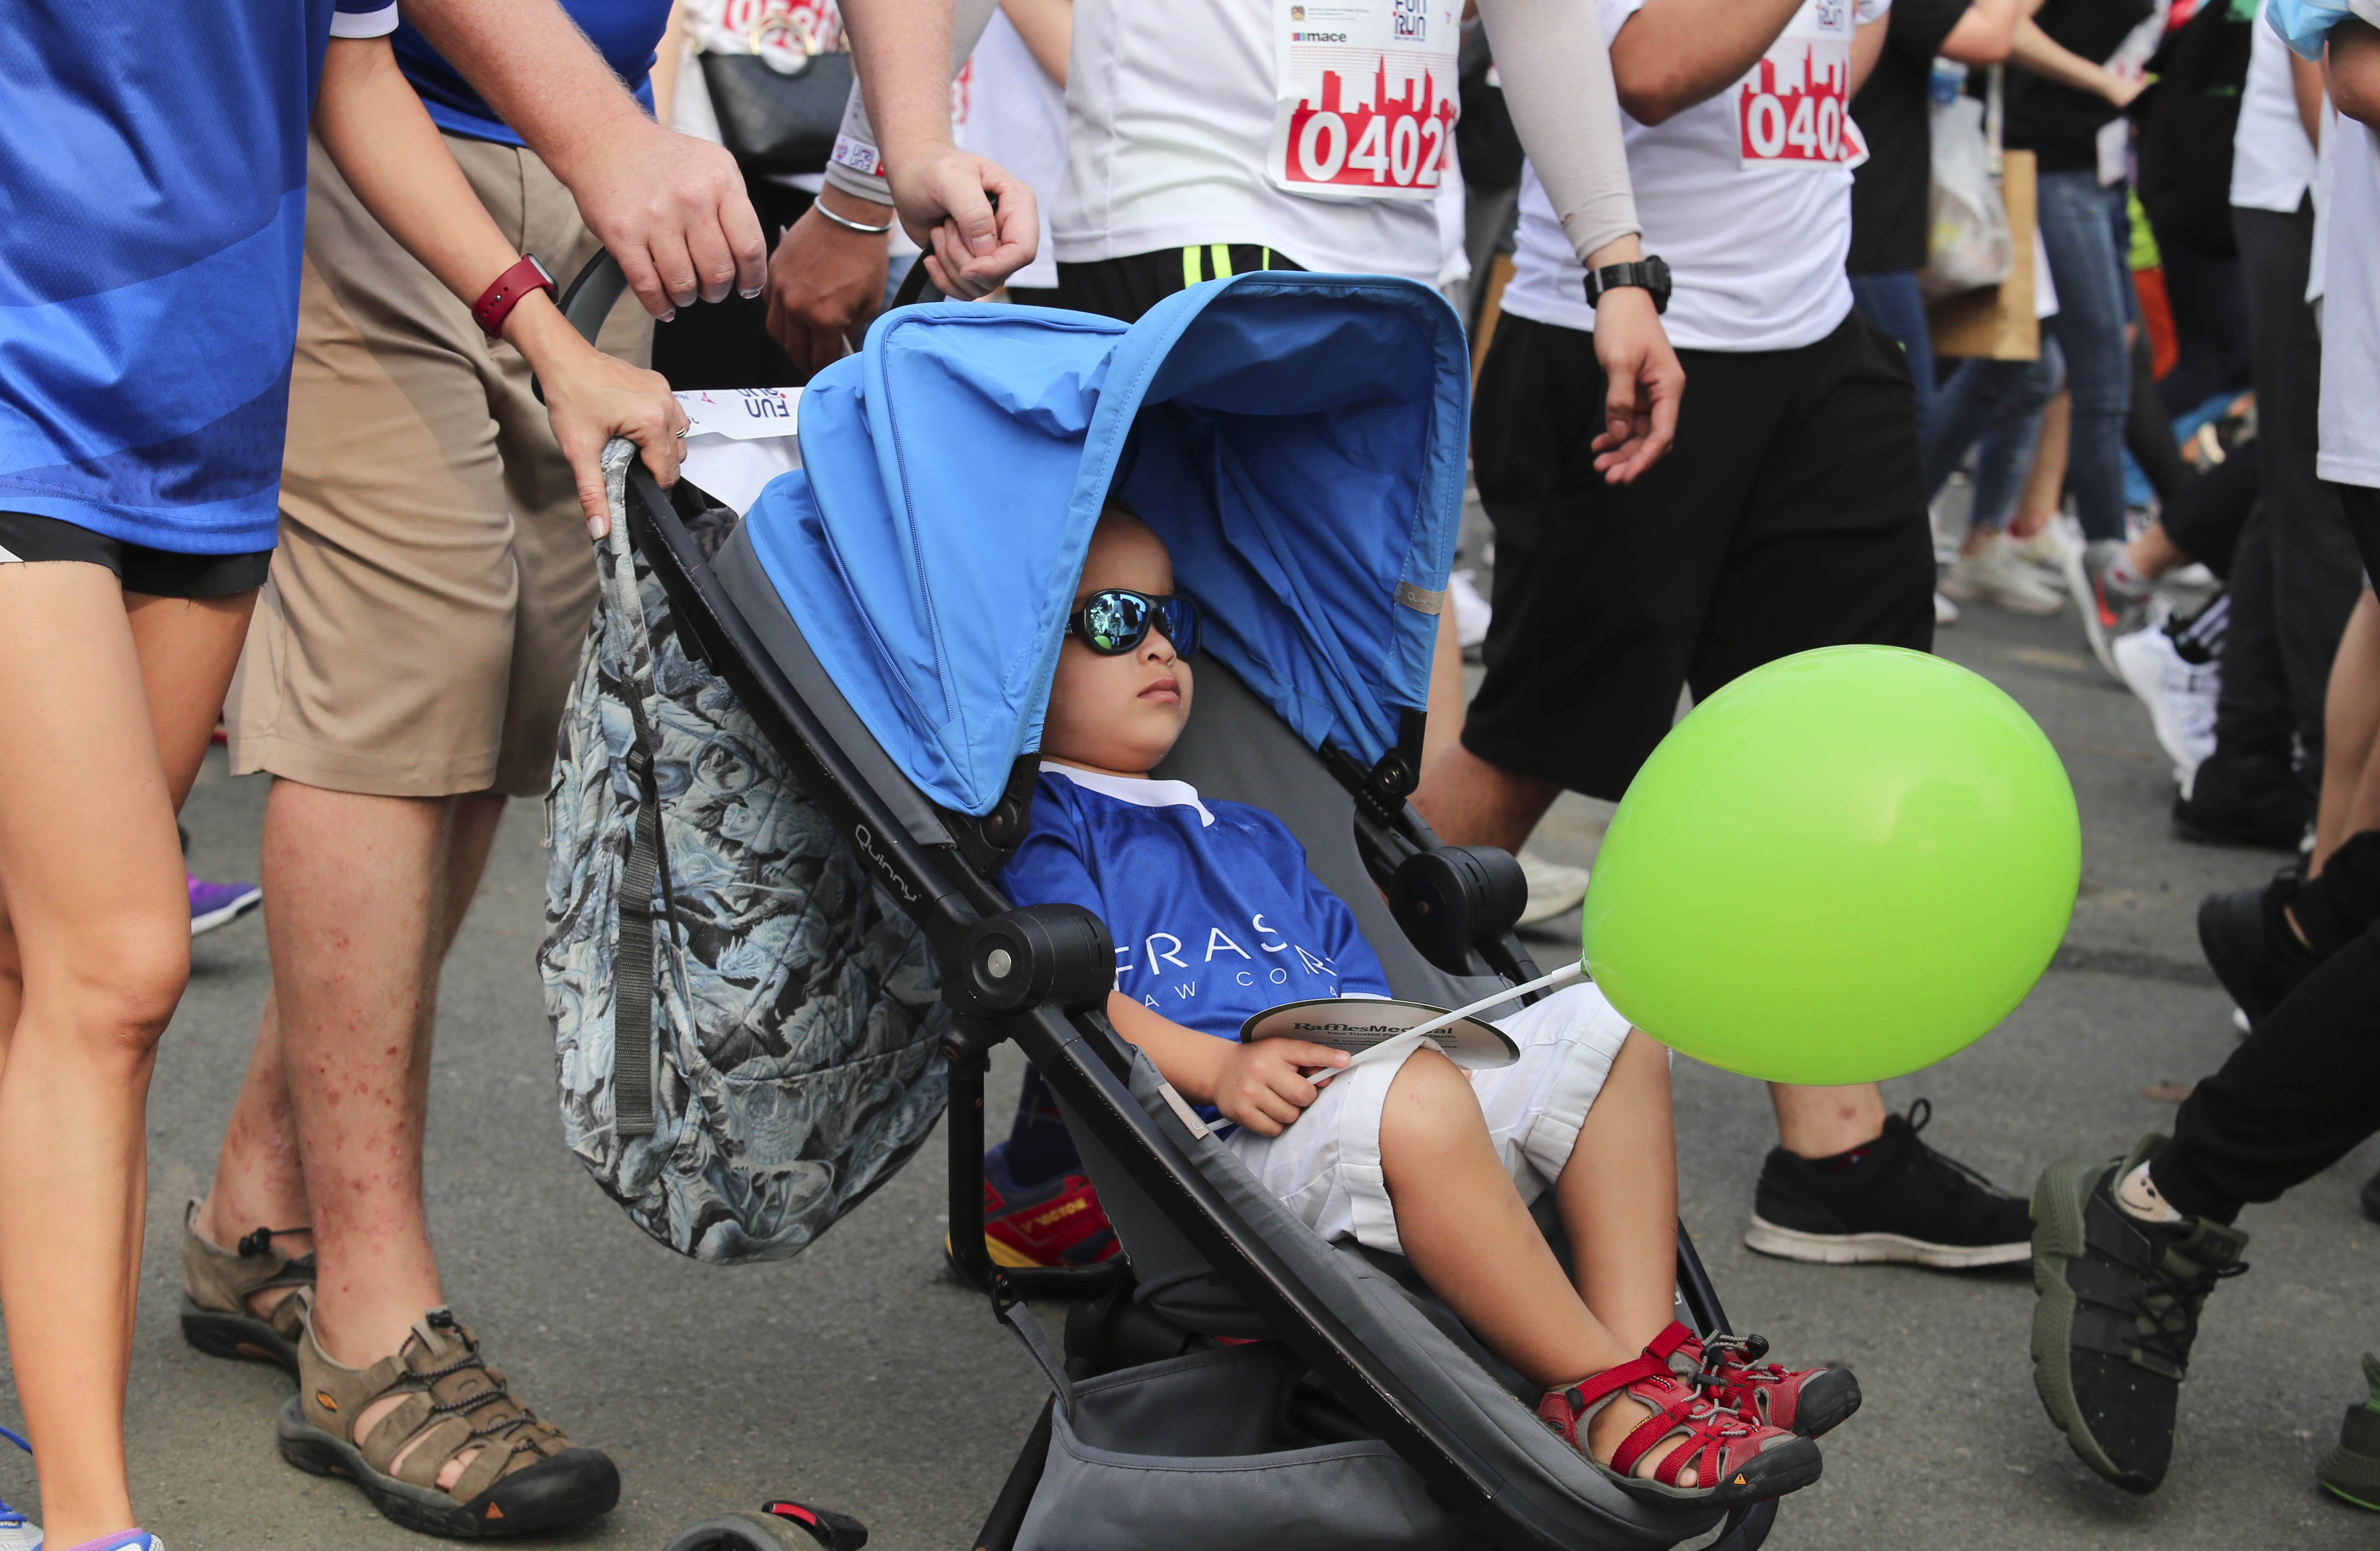 Parents bring their children to the 20th BritCham Charity Fun Run in Ho Chi Minh City on November 15,2020. Photo: Duc Khue/ Tuoi Tre